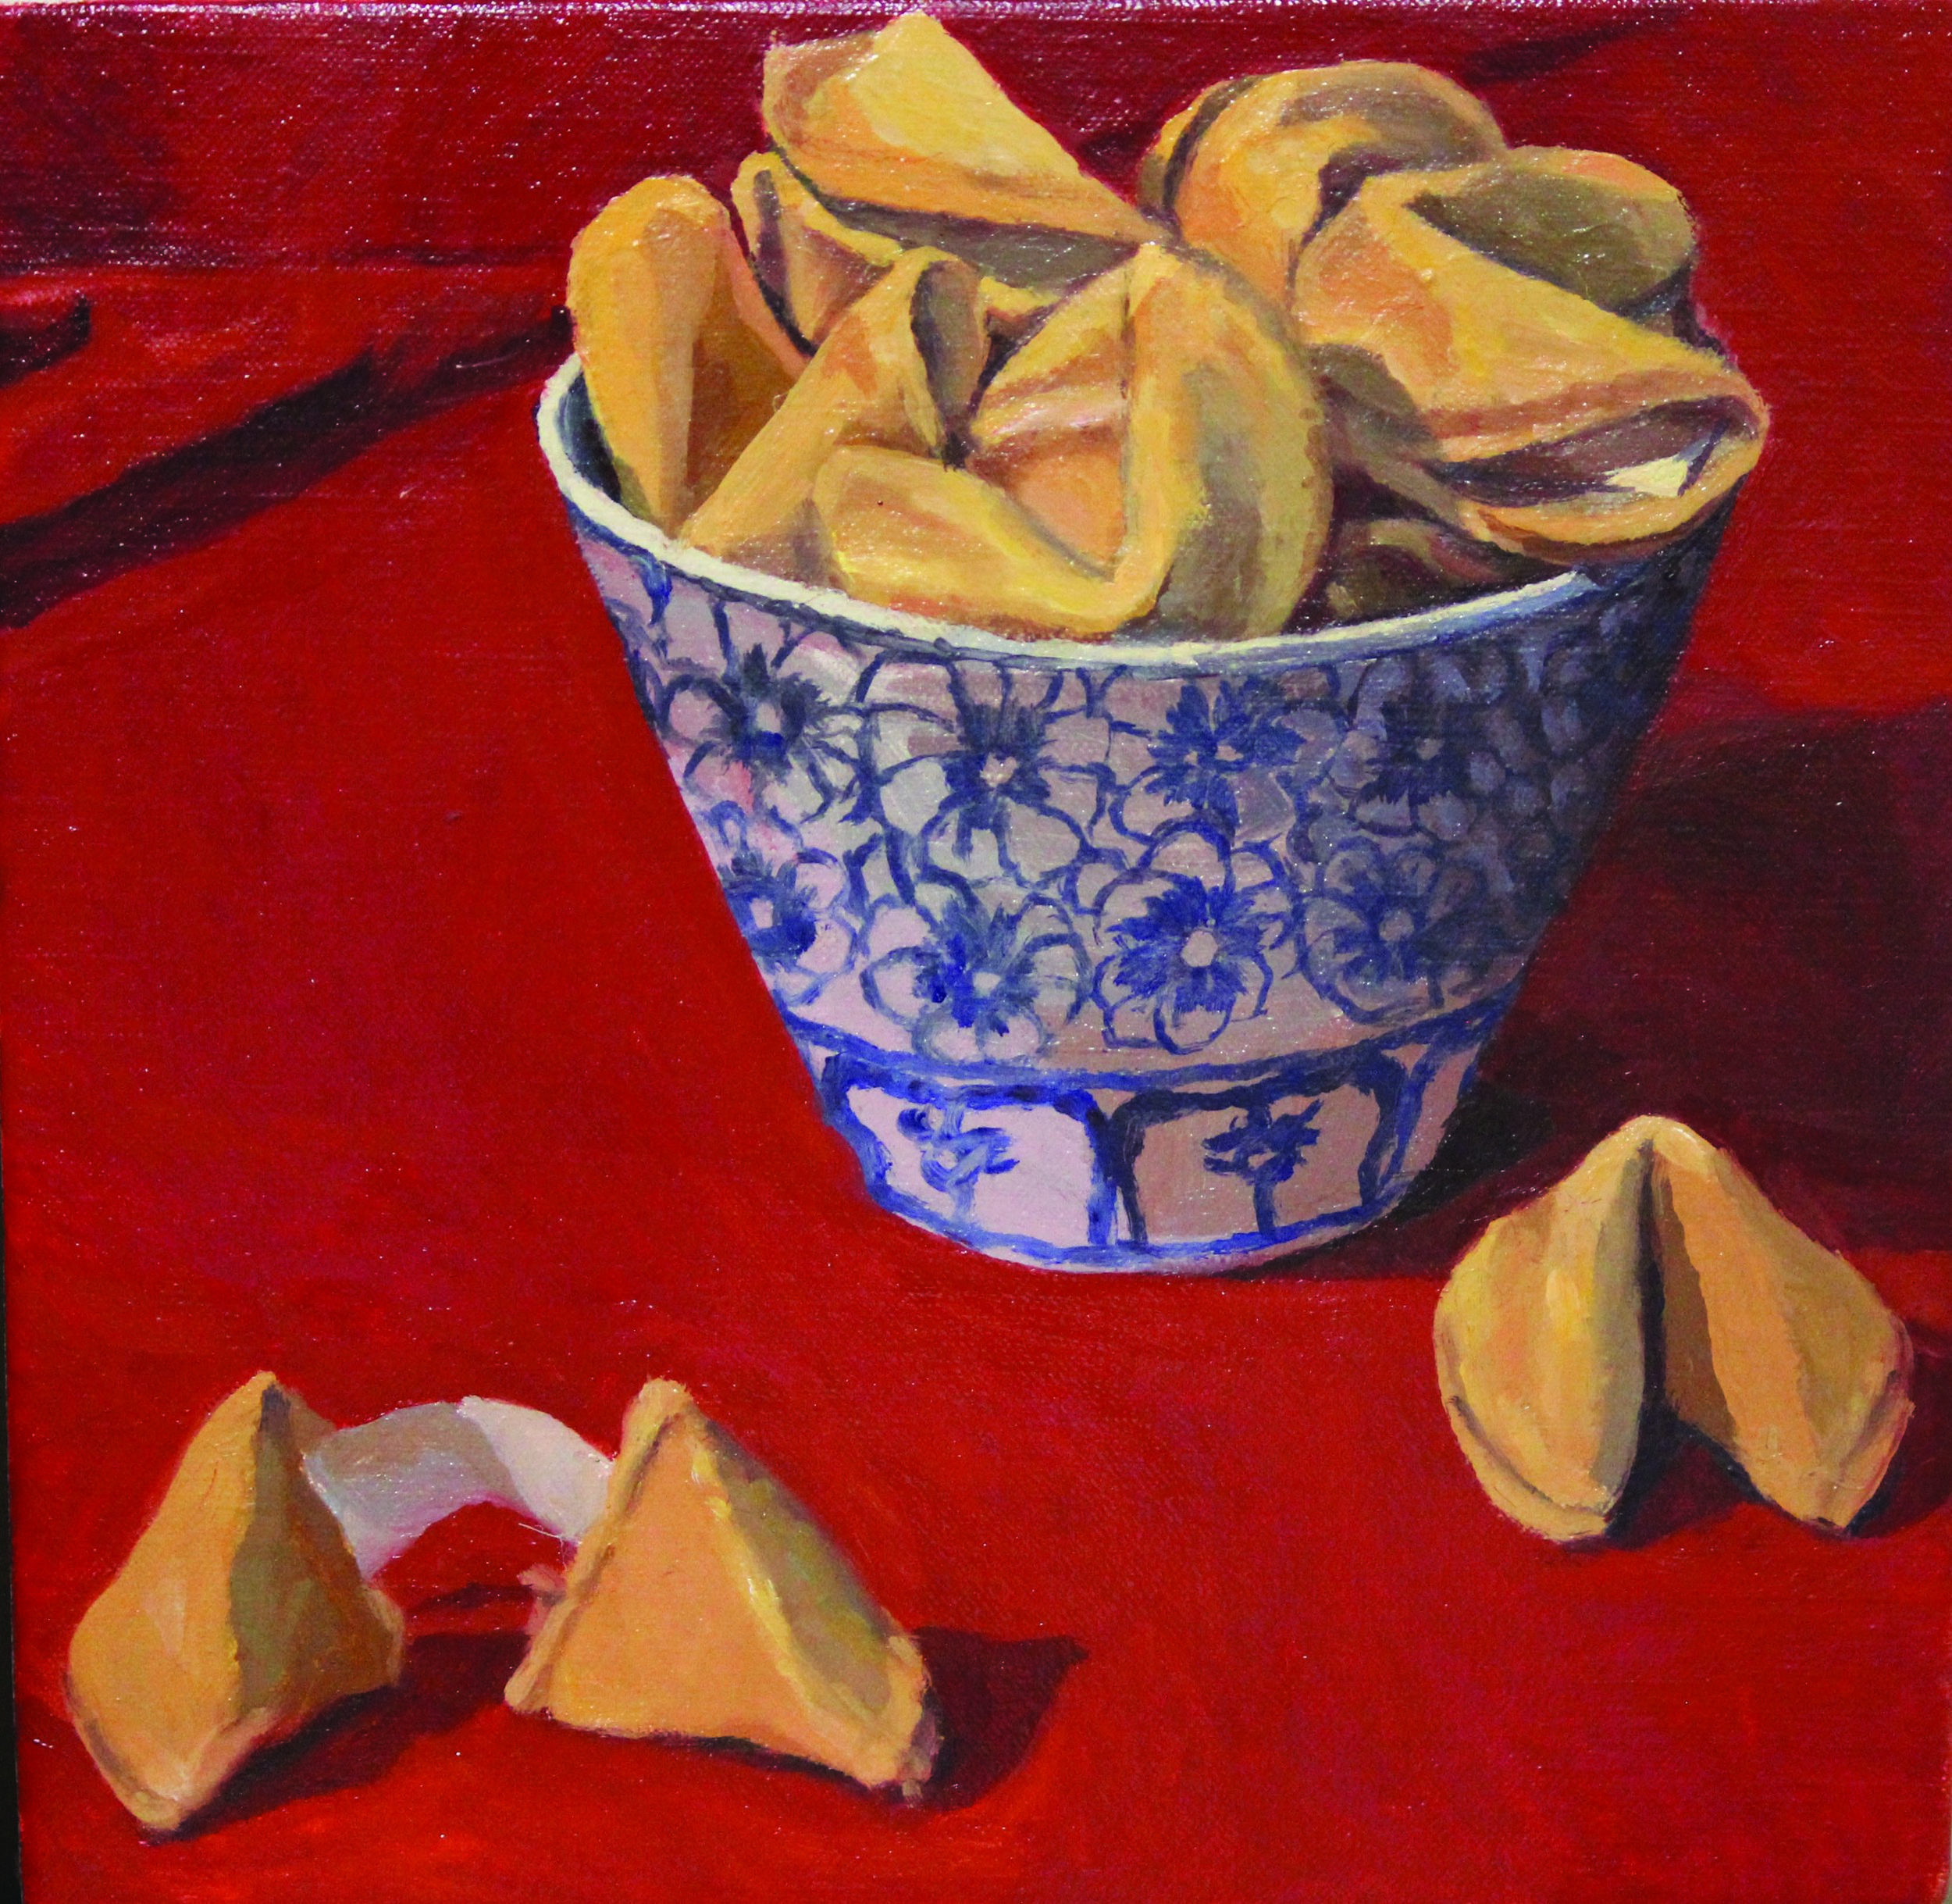 Sam James_ Fortune Cookies_ 2018_Oil on Canvas_27.5cm x 25.5cm .jpg